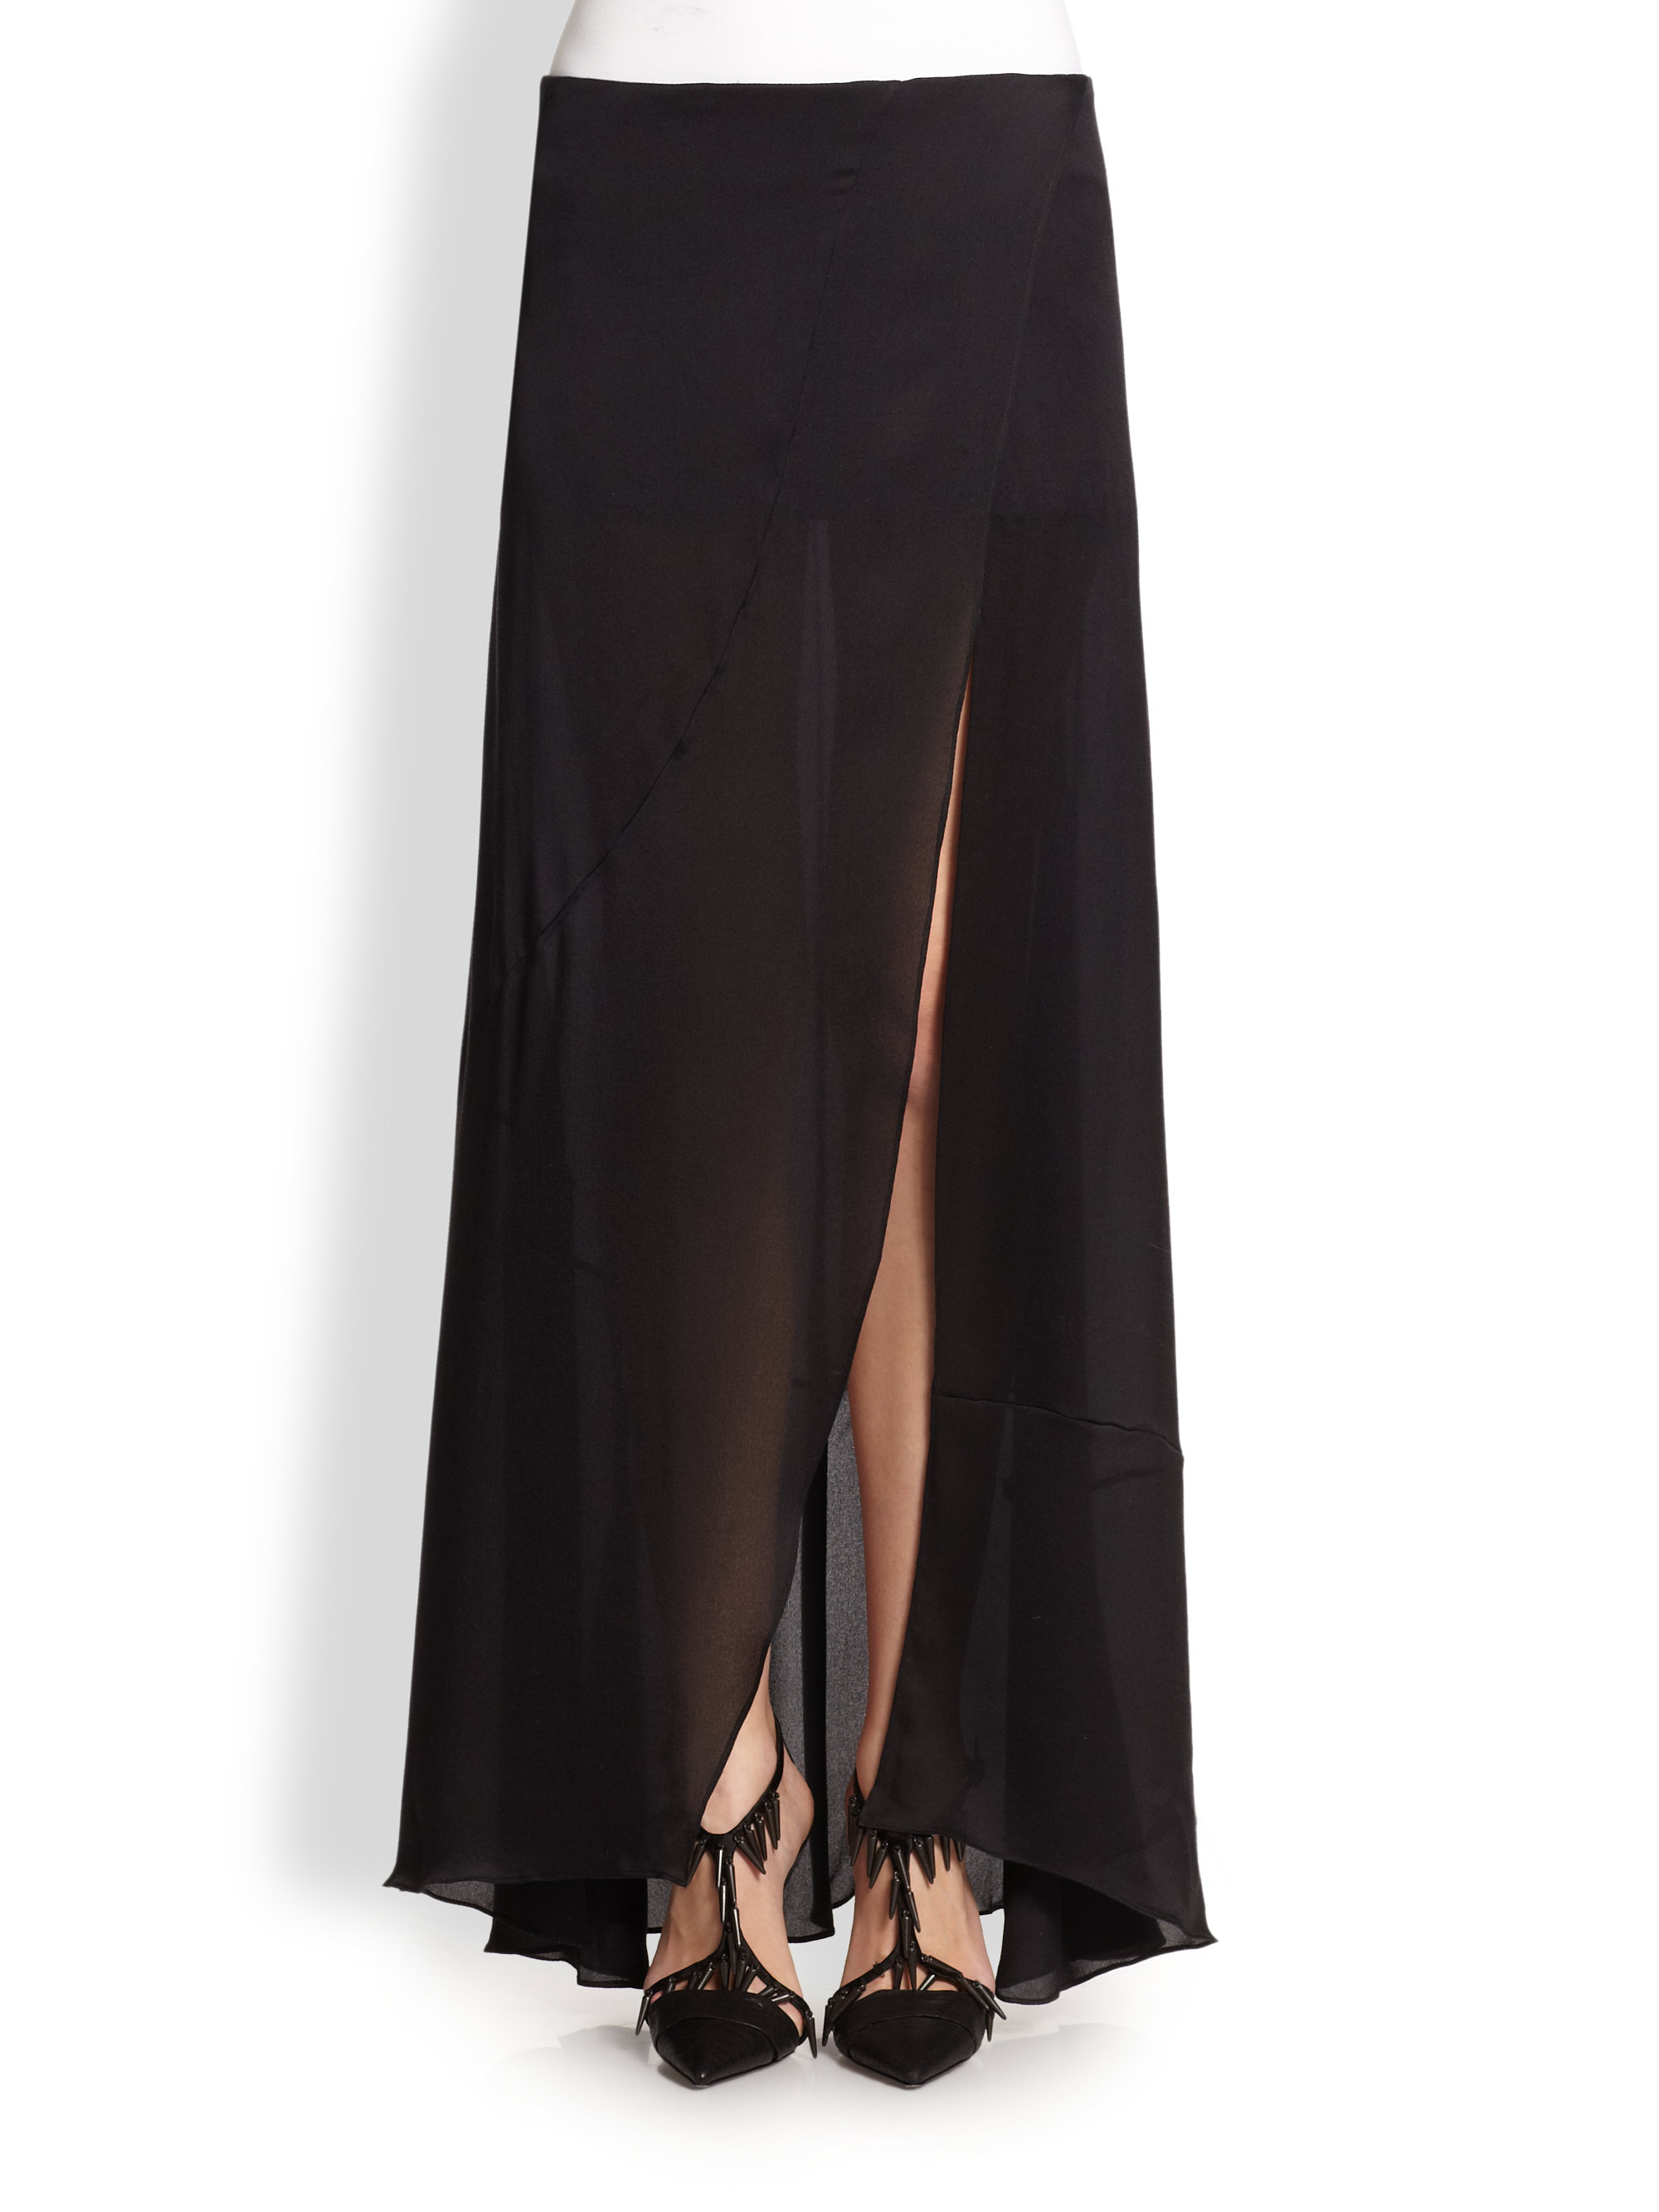 Narciso rodriguez Silk Satin Maxi Skirt in Black | Lyst